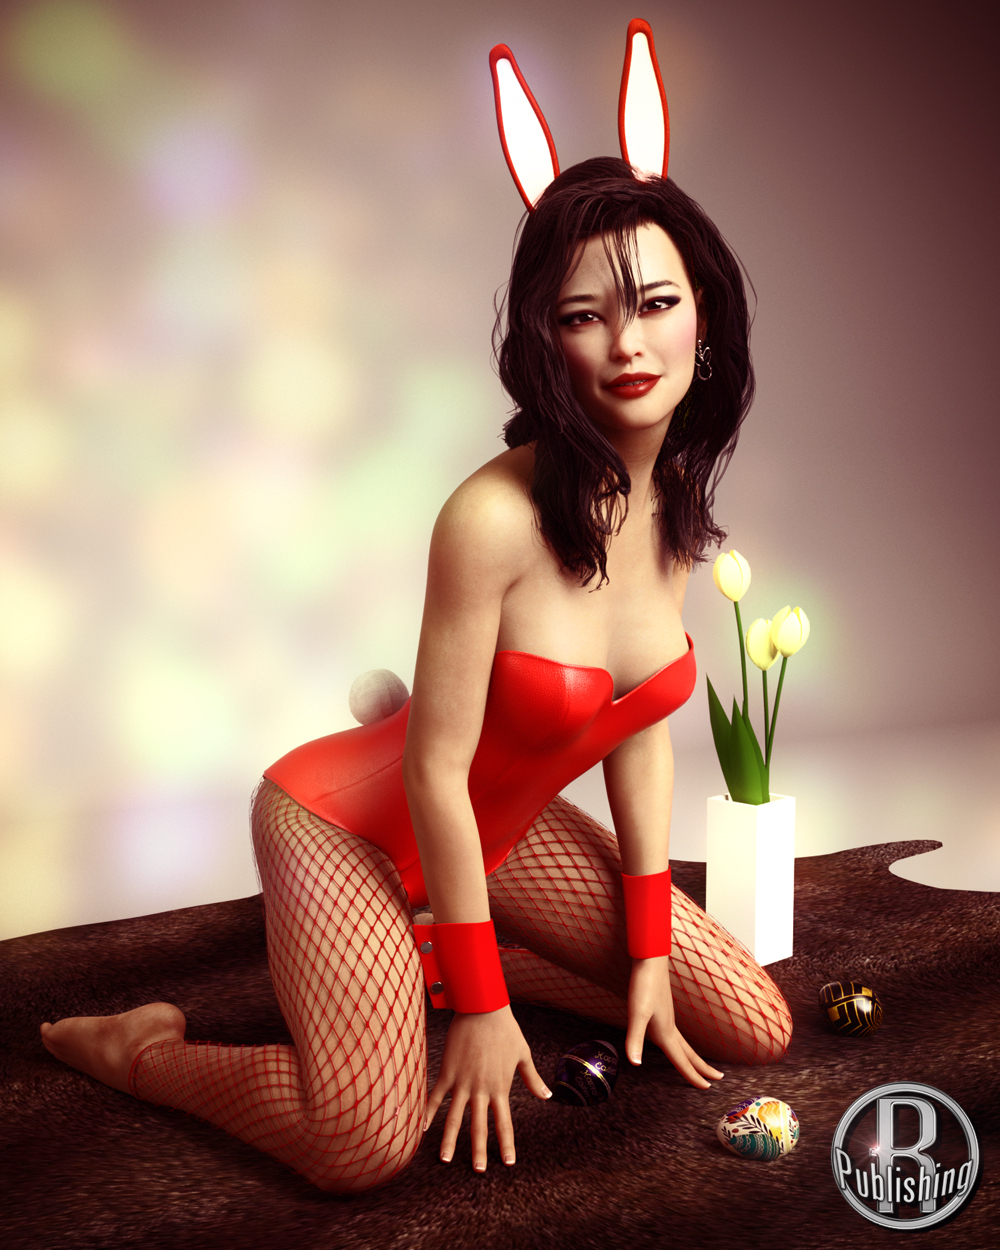 Happy Easter by RPublishing